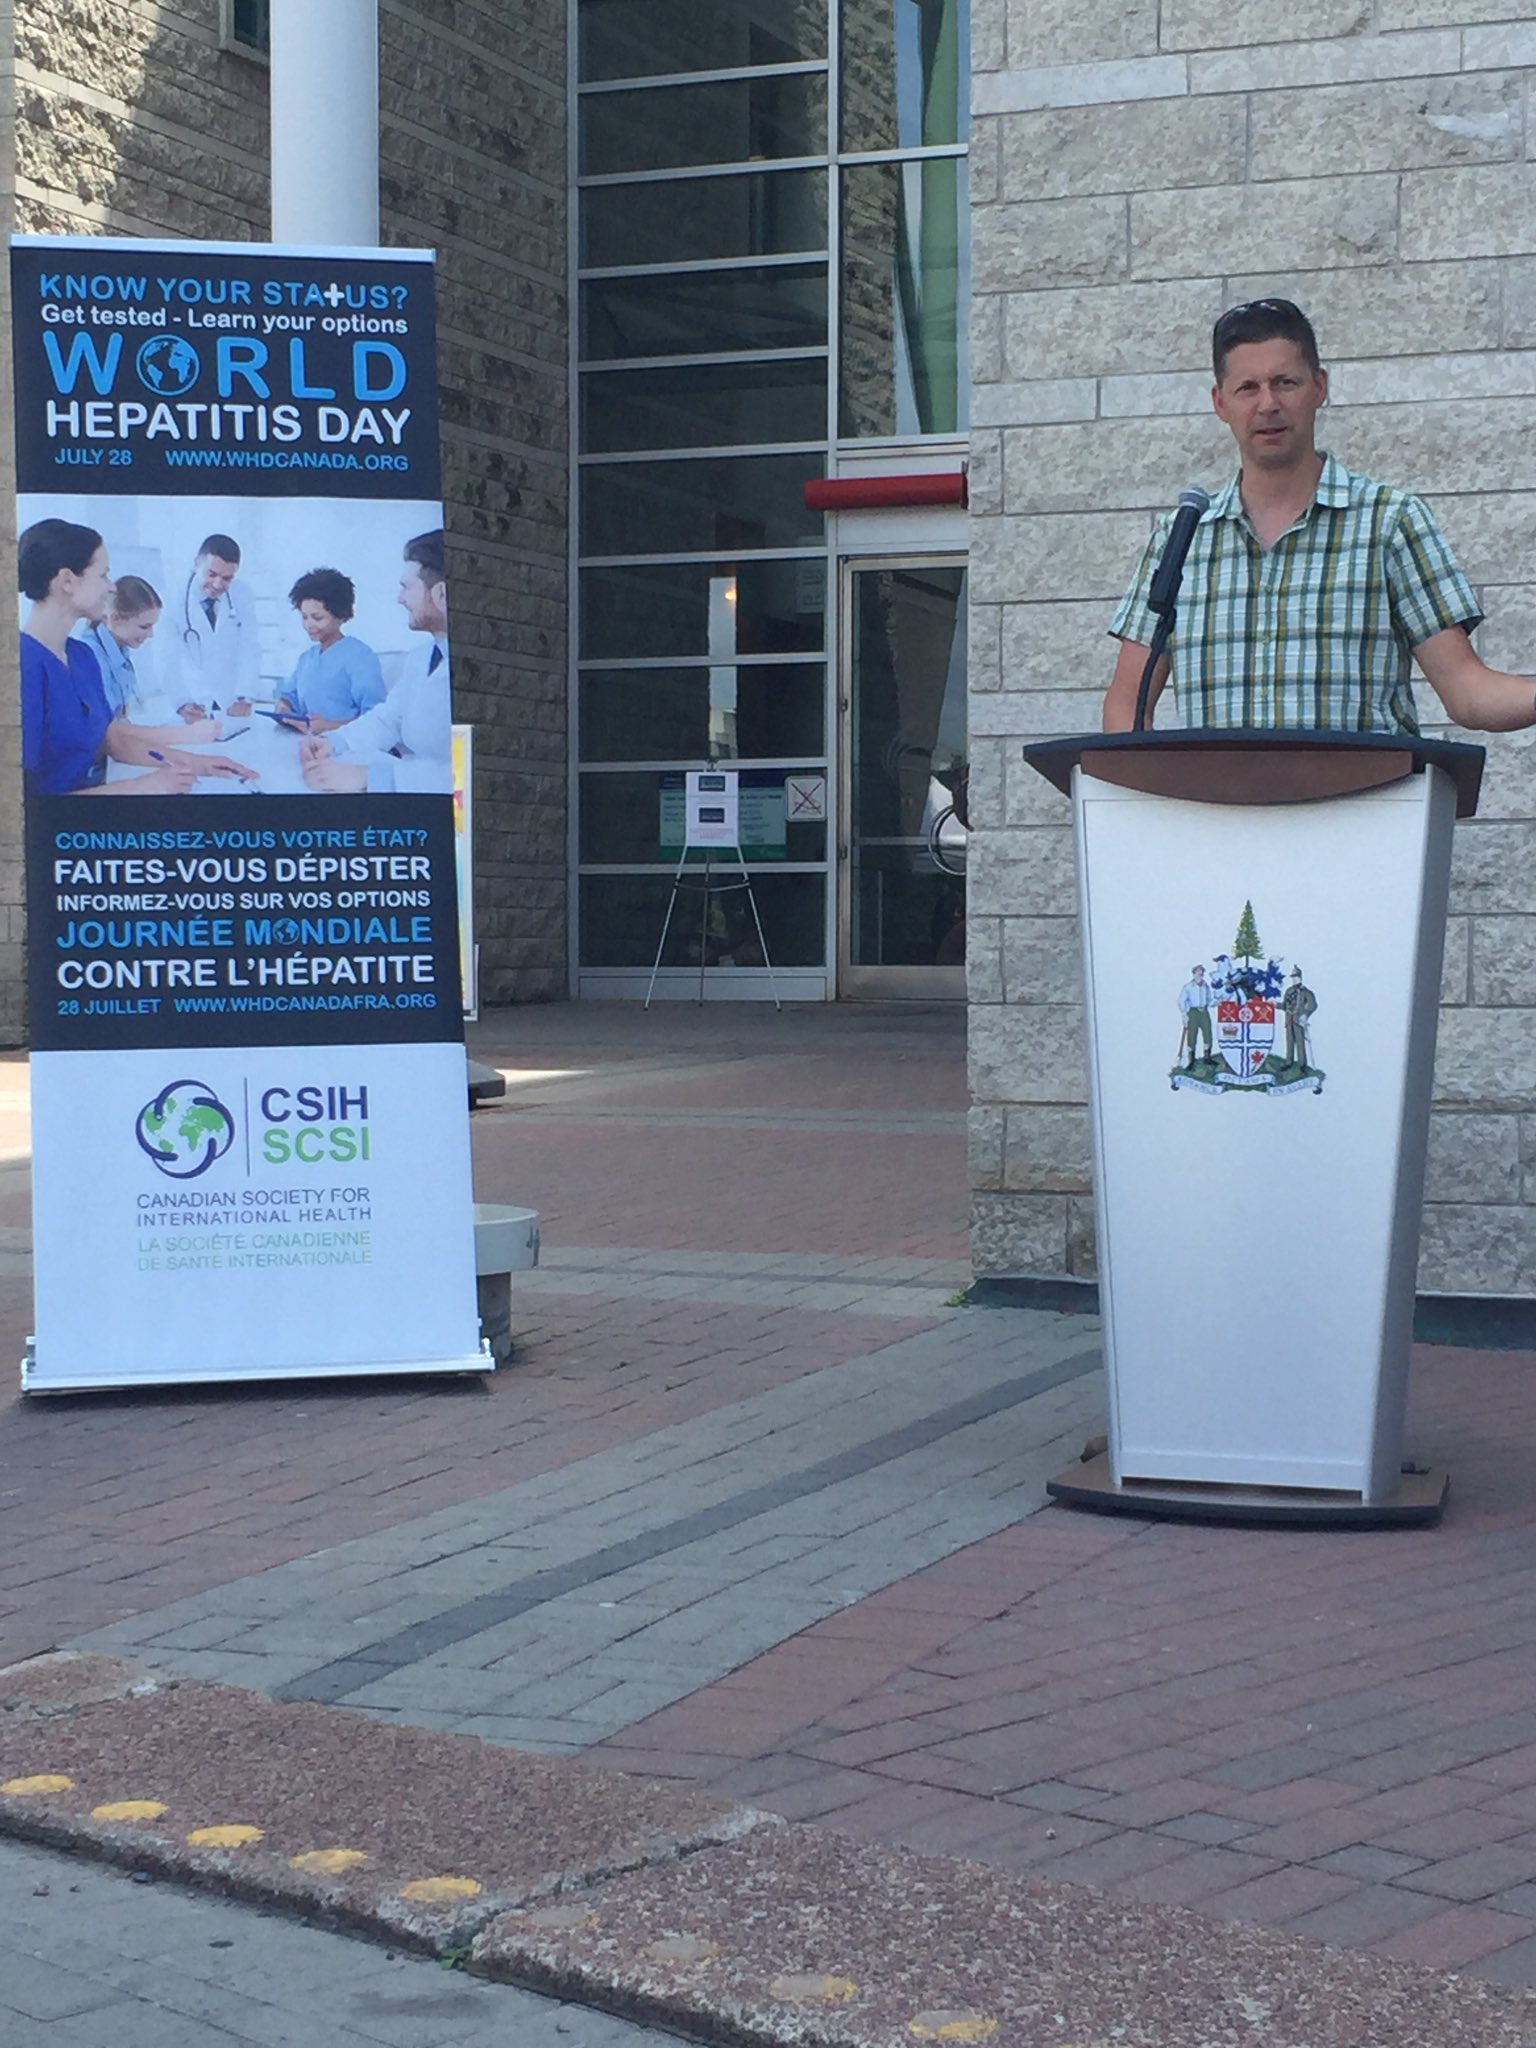 CAHR's President Elect, Dr. Curtis Cooper, speaking at @CSIH_ #WorldHepatitisDay event at #OttawaCityHall  #NoHep https://t.co/s7R3op3yOO